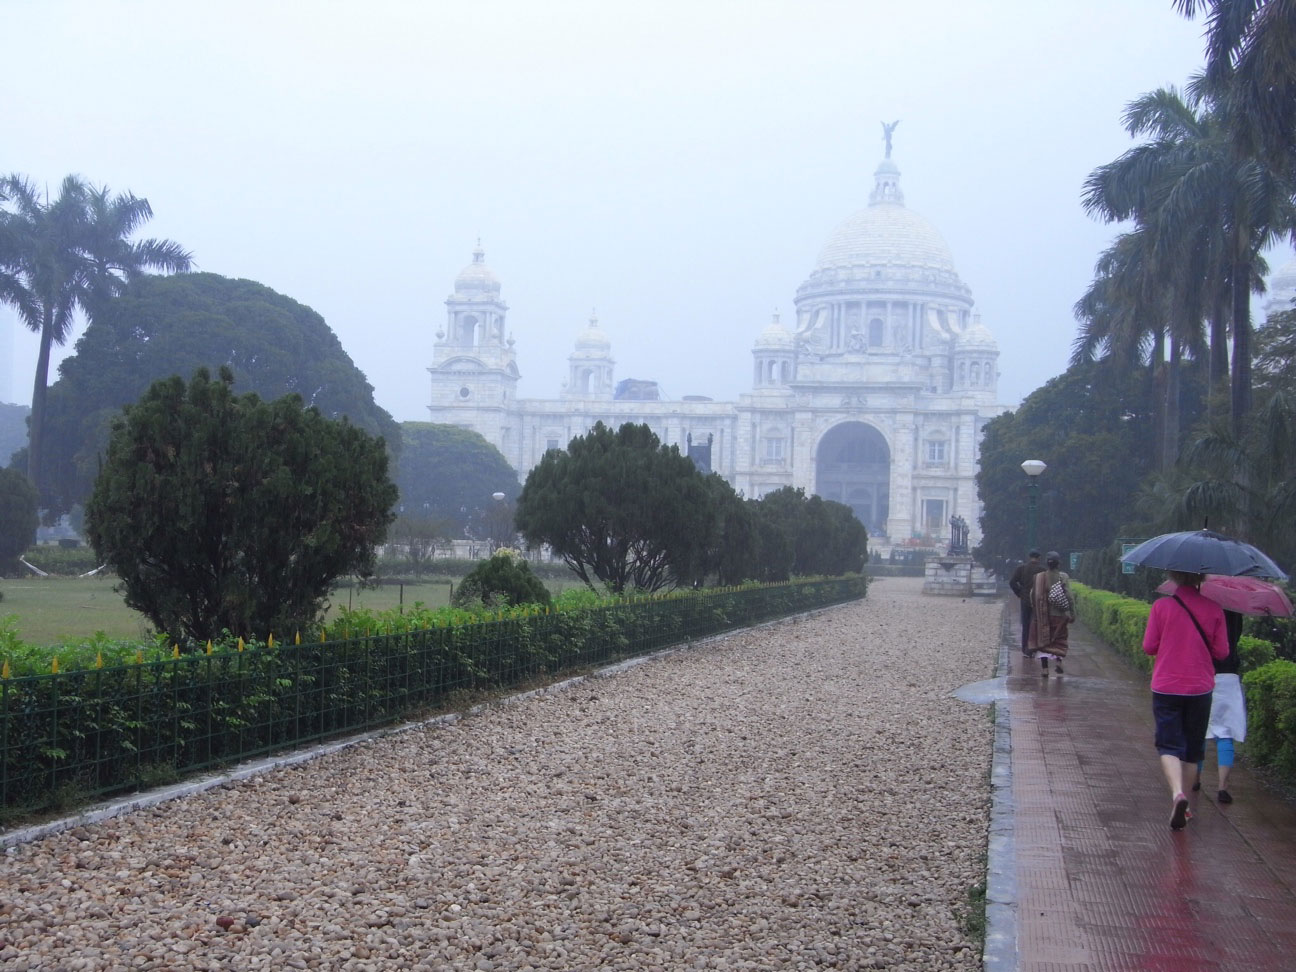 Victoria Memorial designed by Lord Curzon